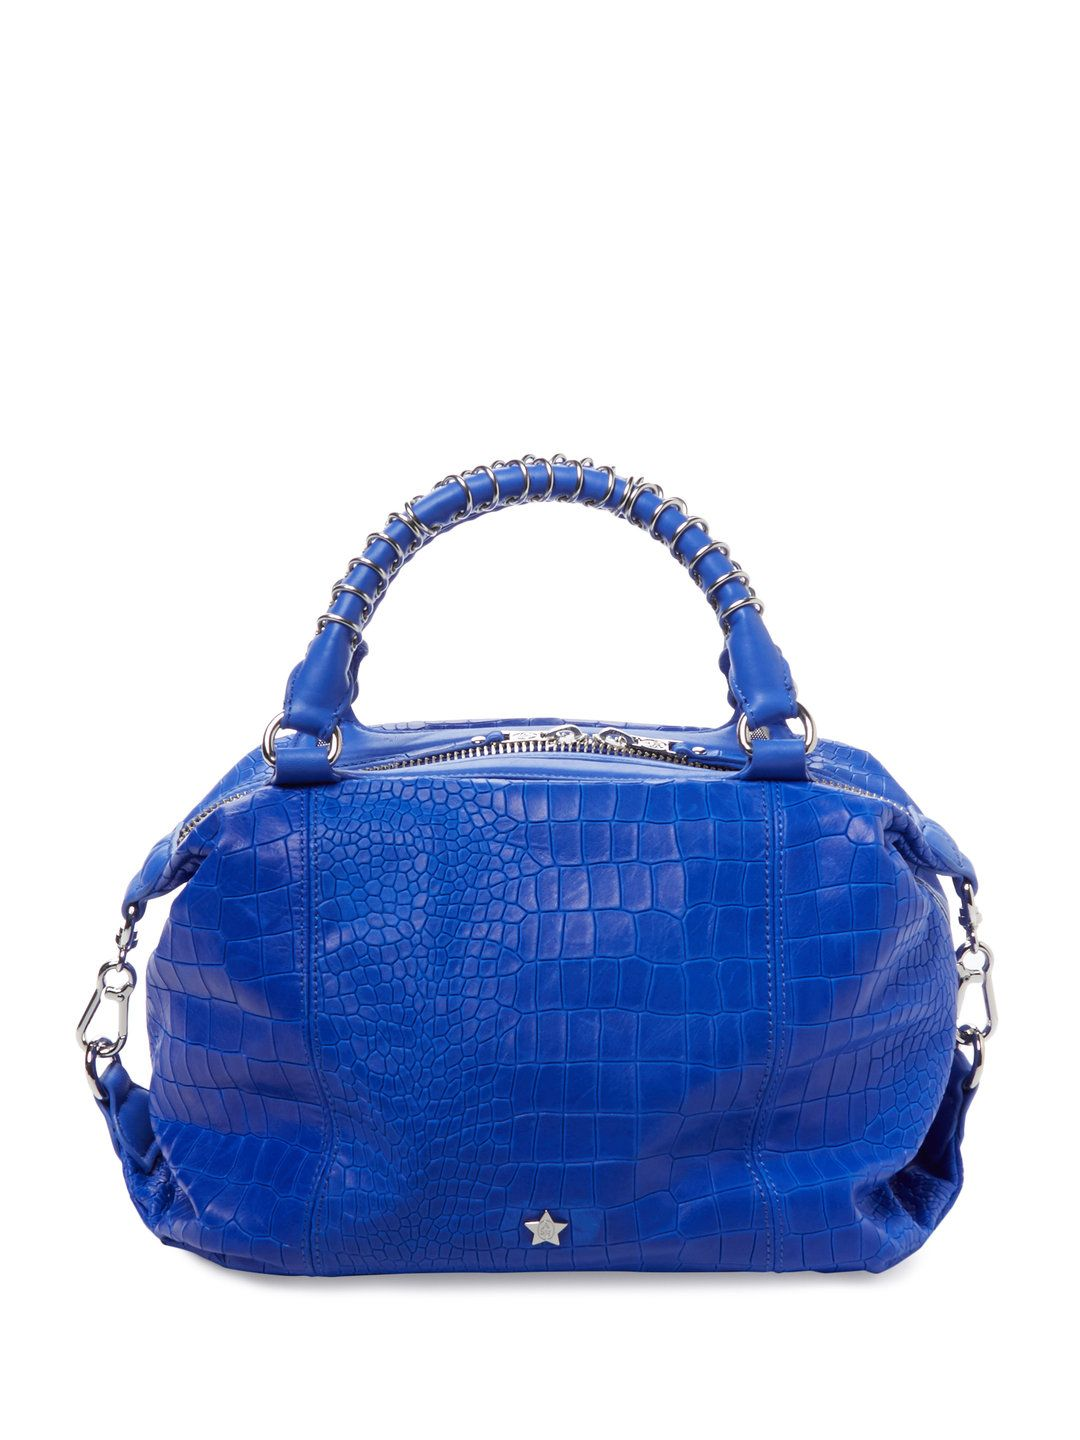 Sasha Croc Embossed Leather Satchel by Ash at Gilt